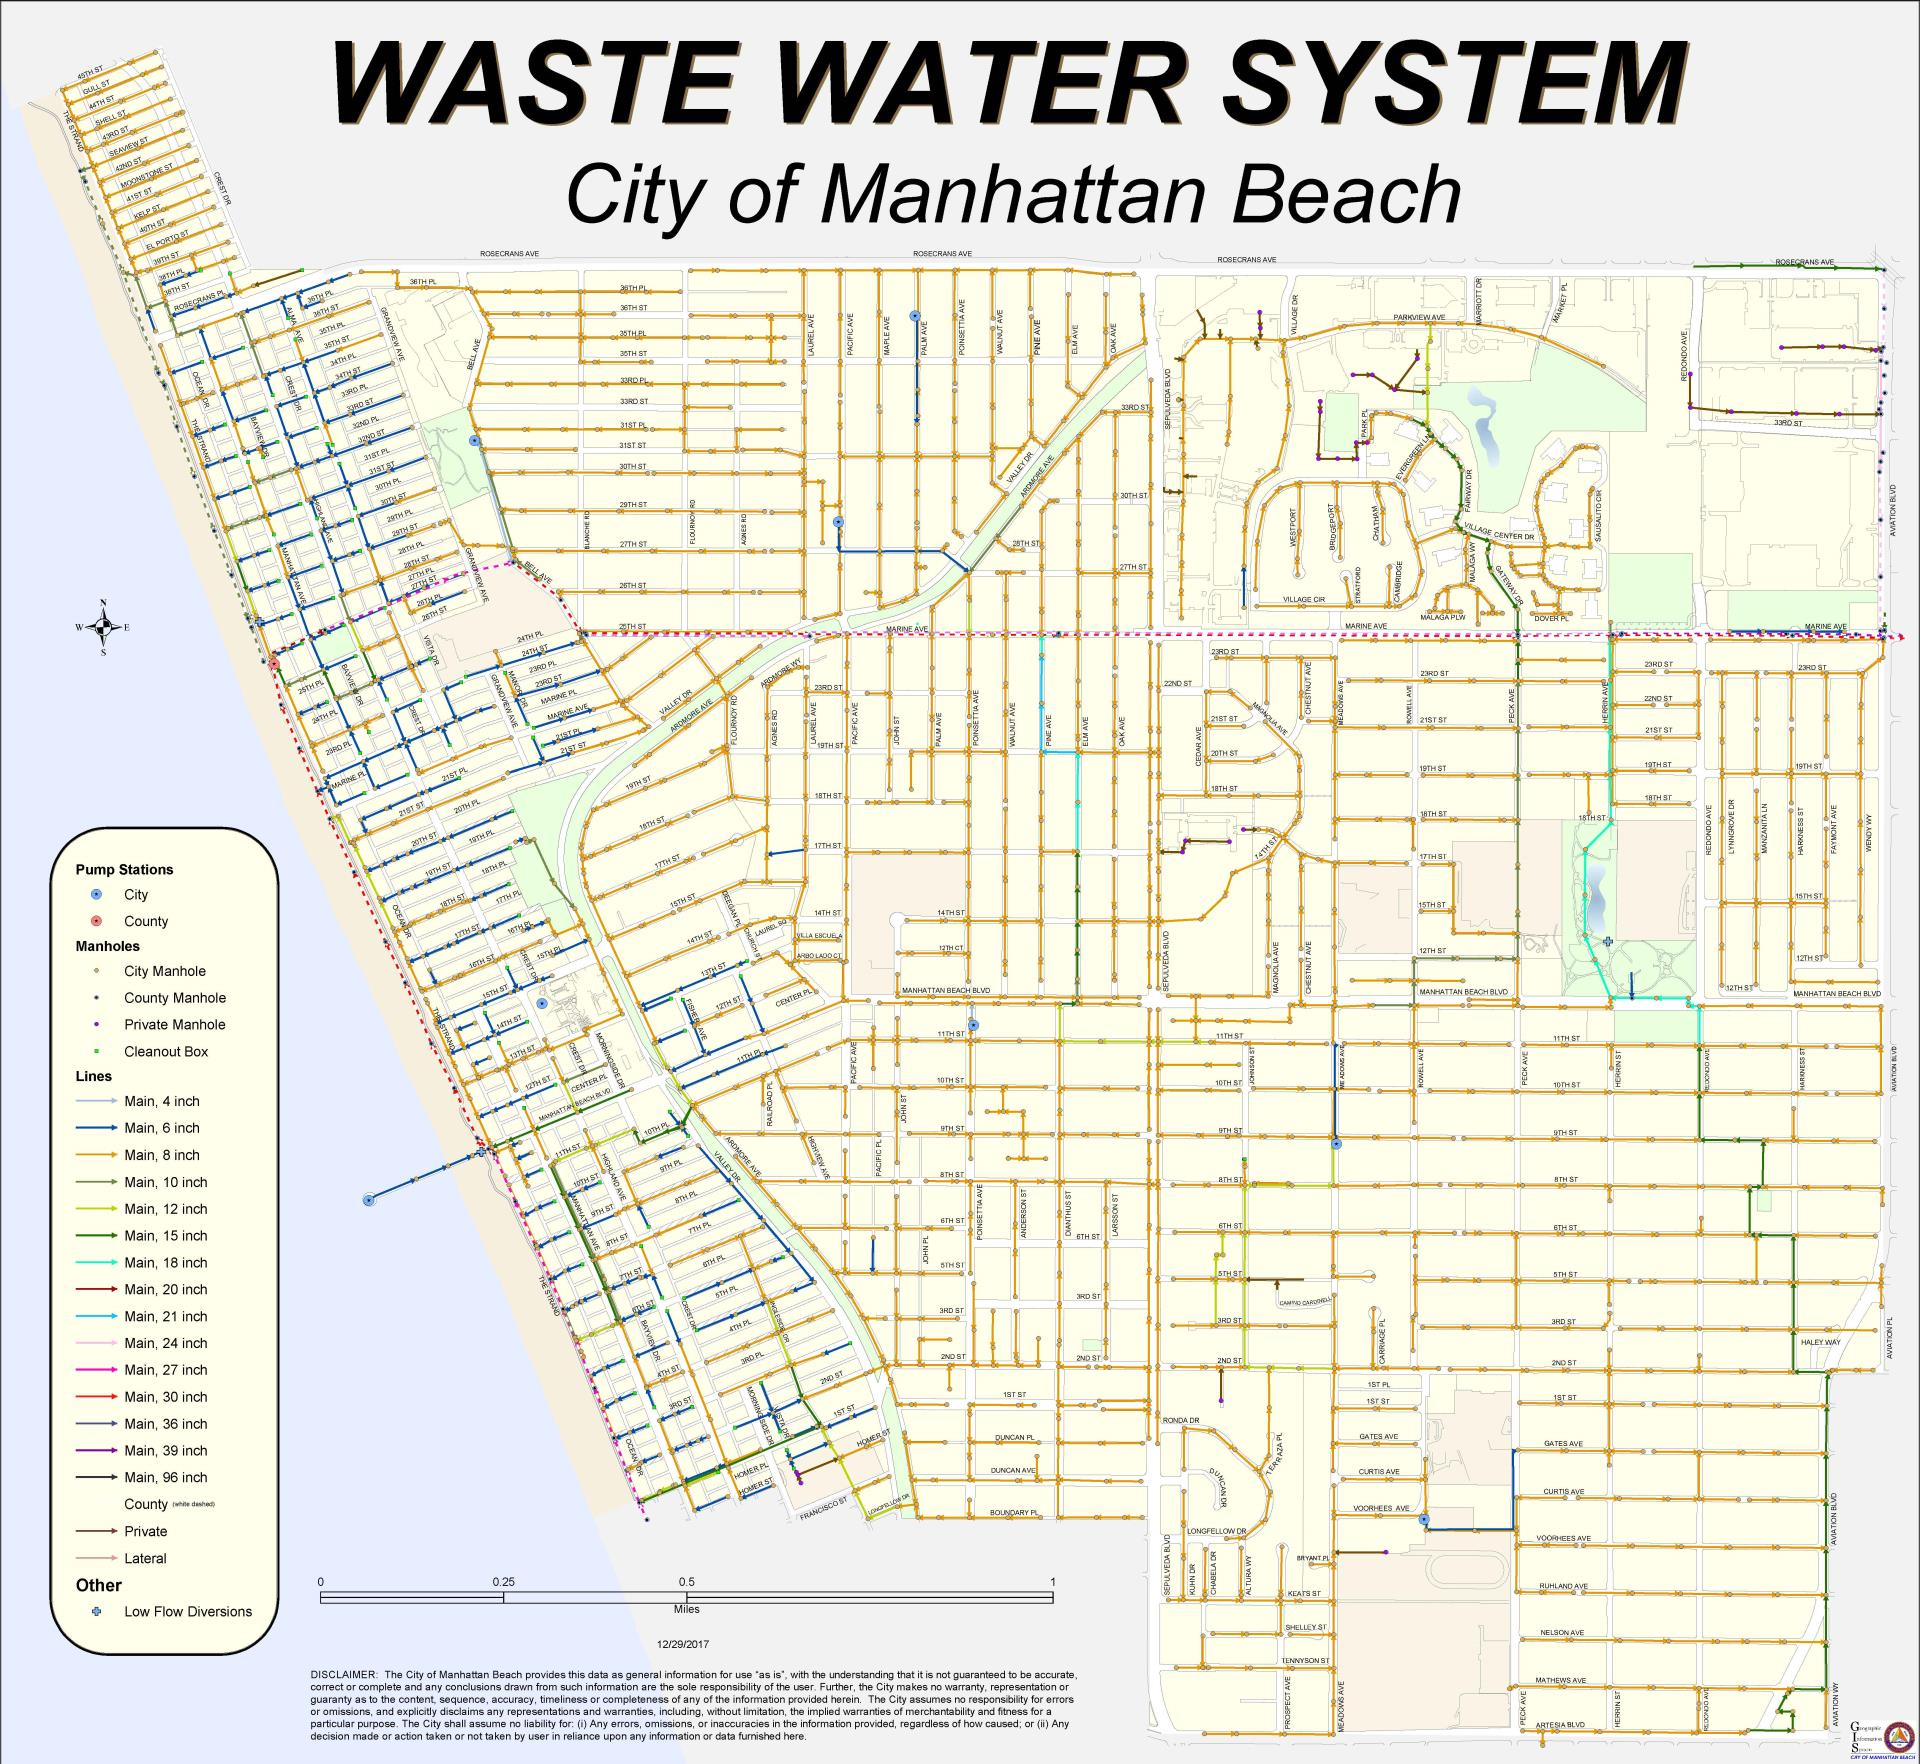 Waste Water System